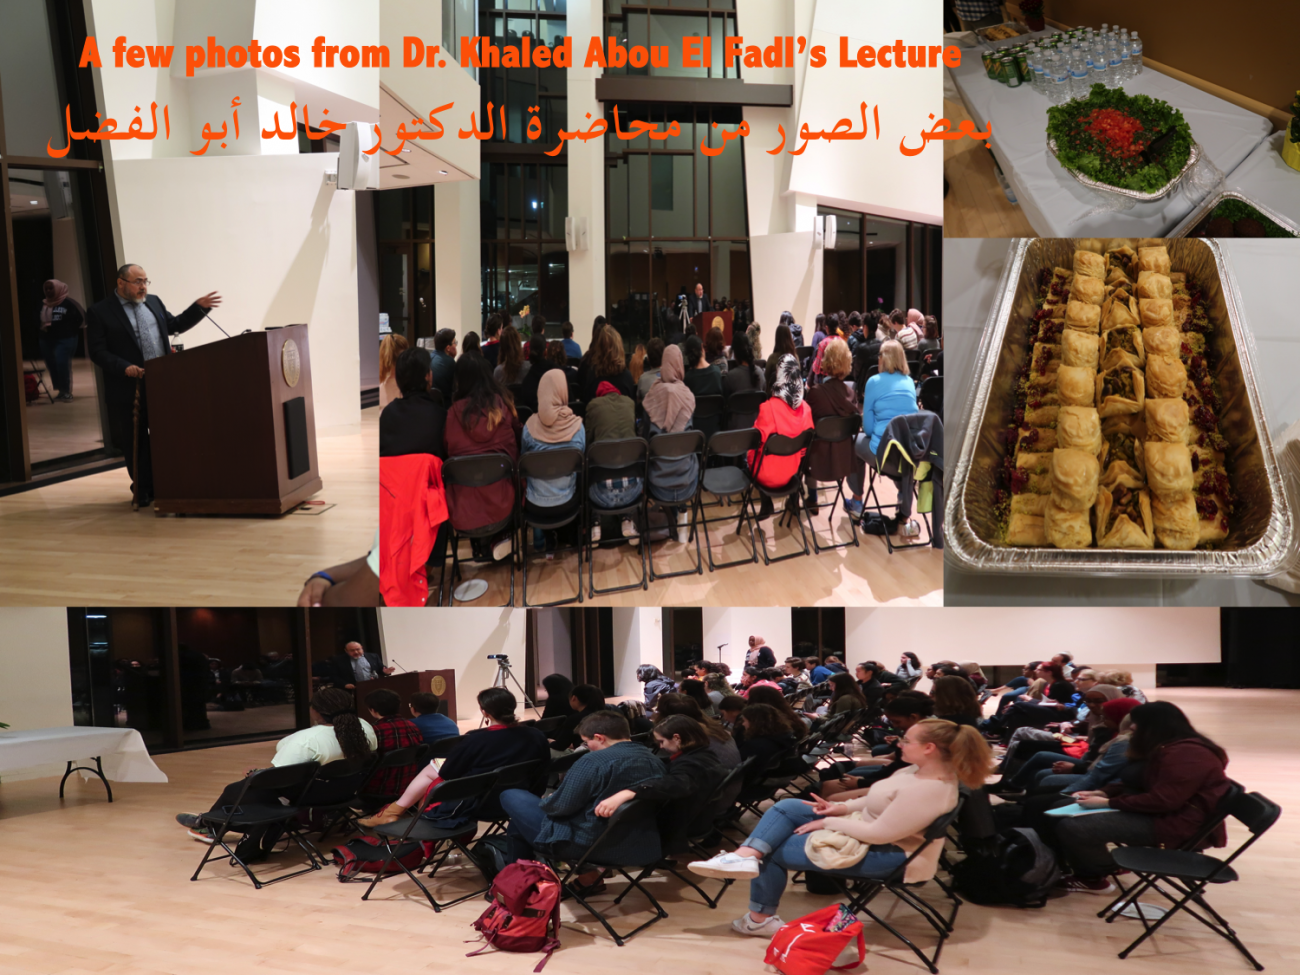 A few photos from Dr. Khaled Abou El Fadl's Lecture